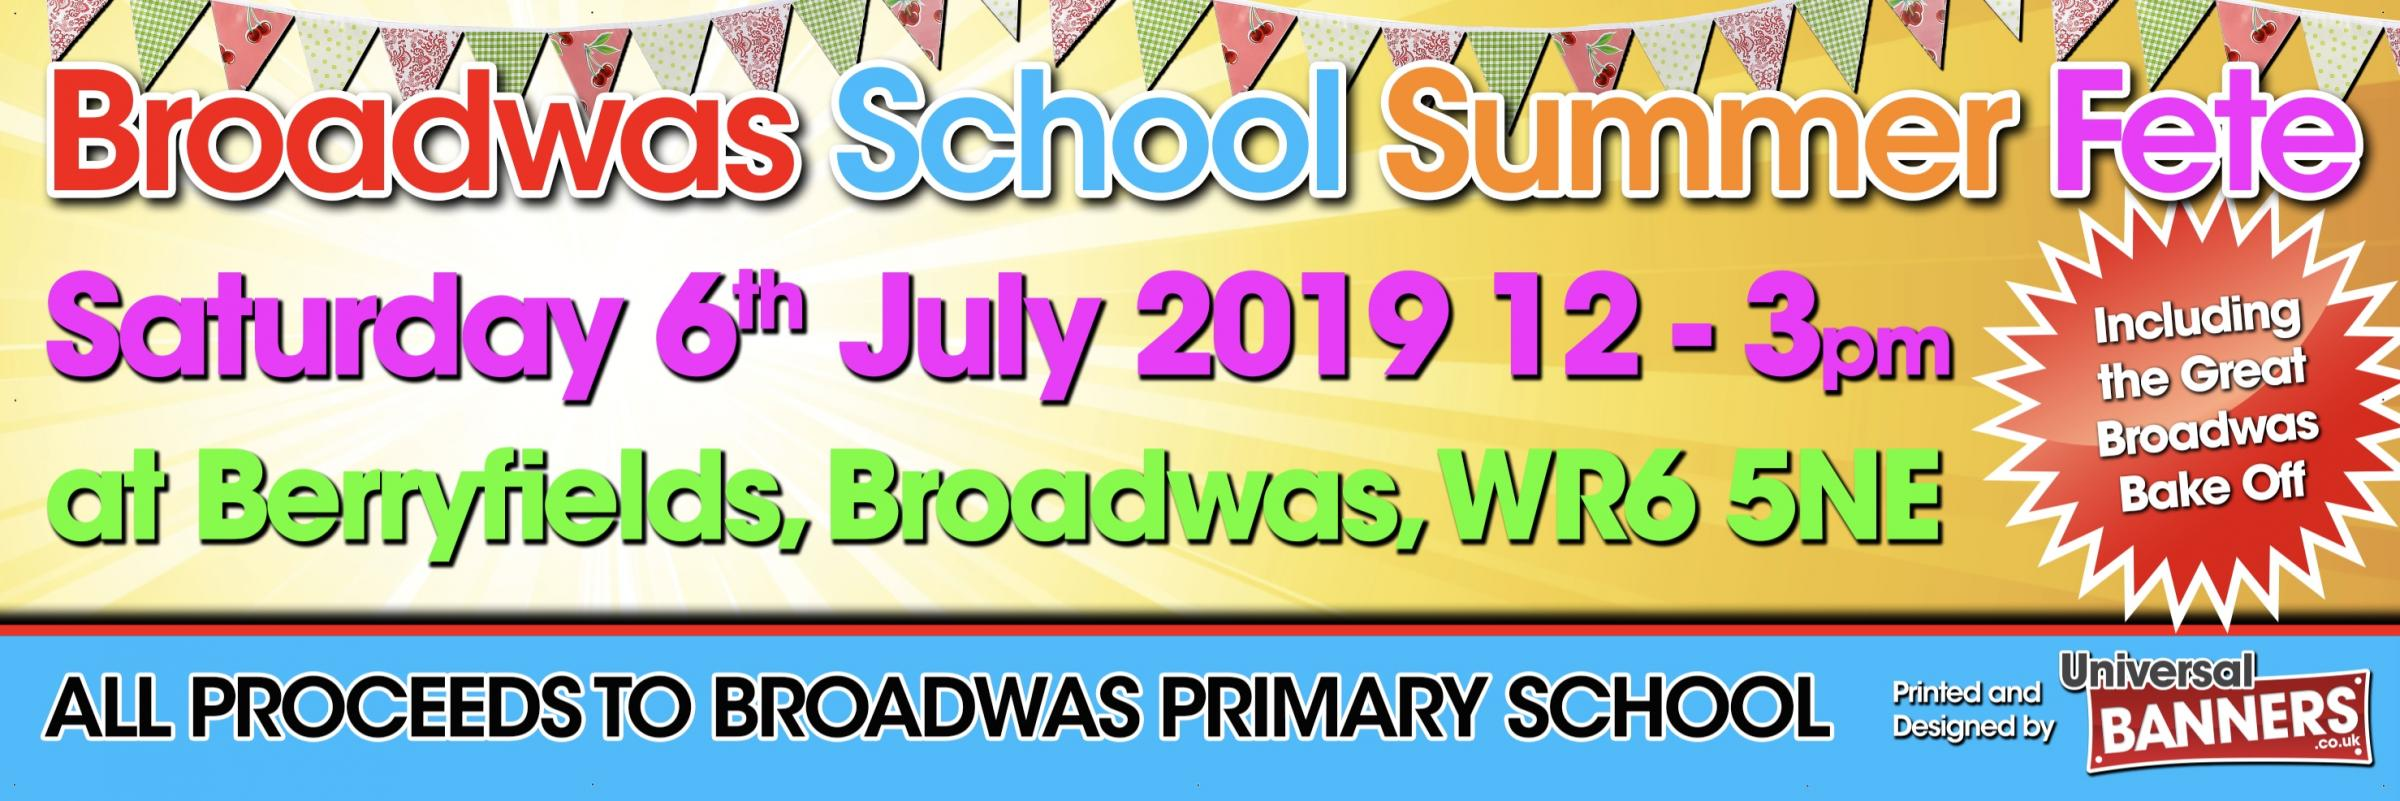 Broadwas School Summer Fete